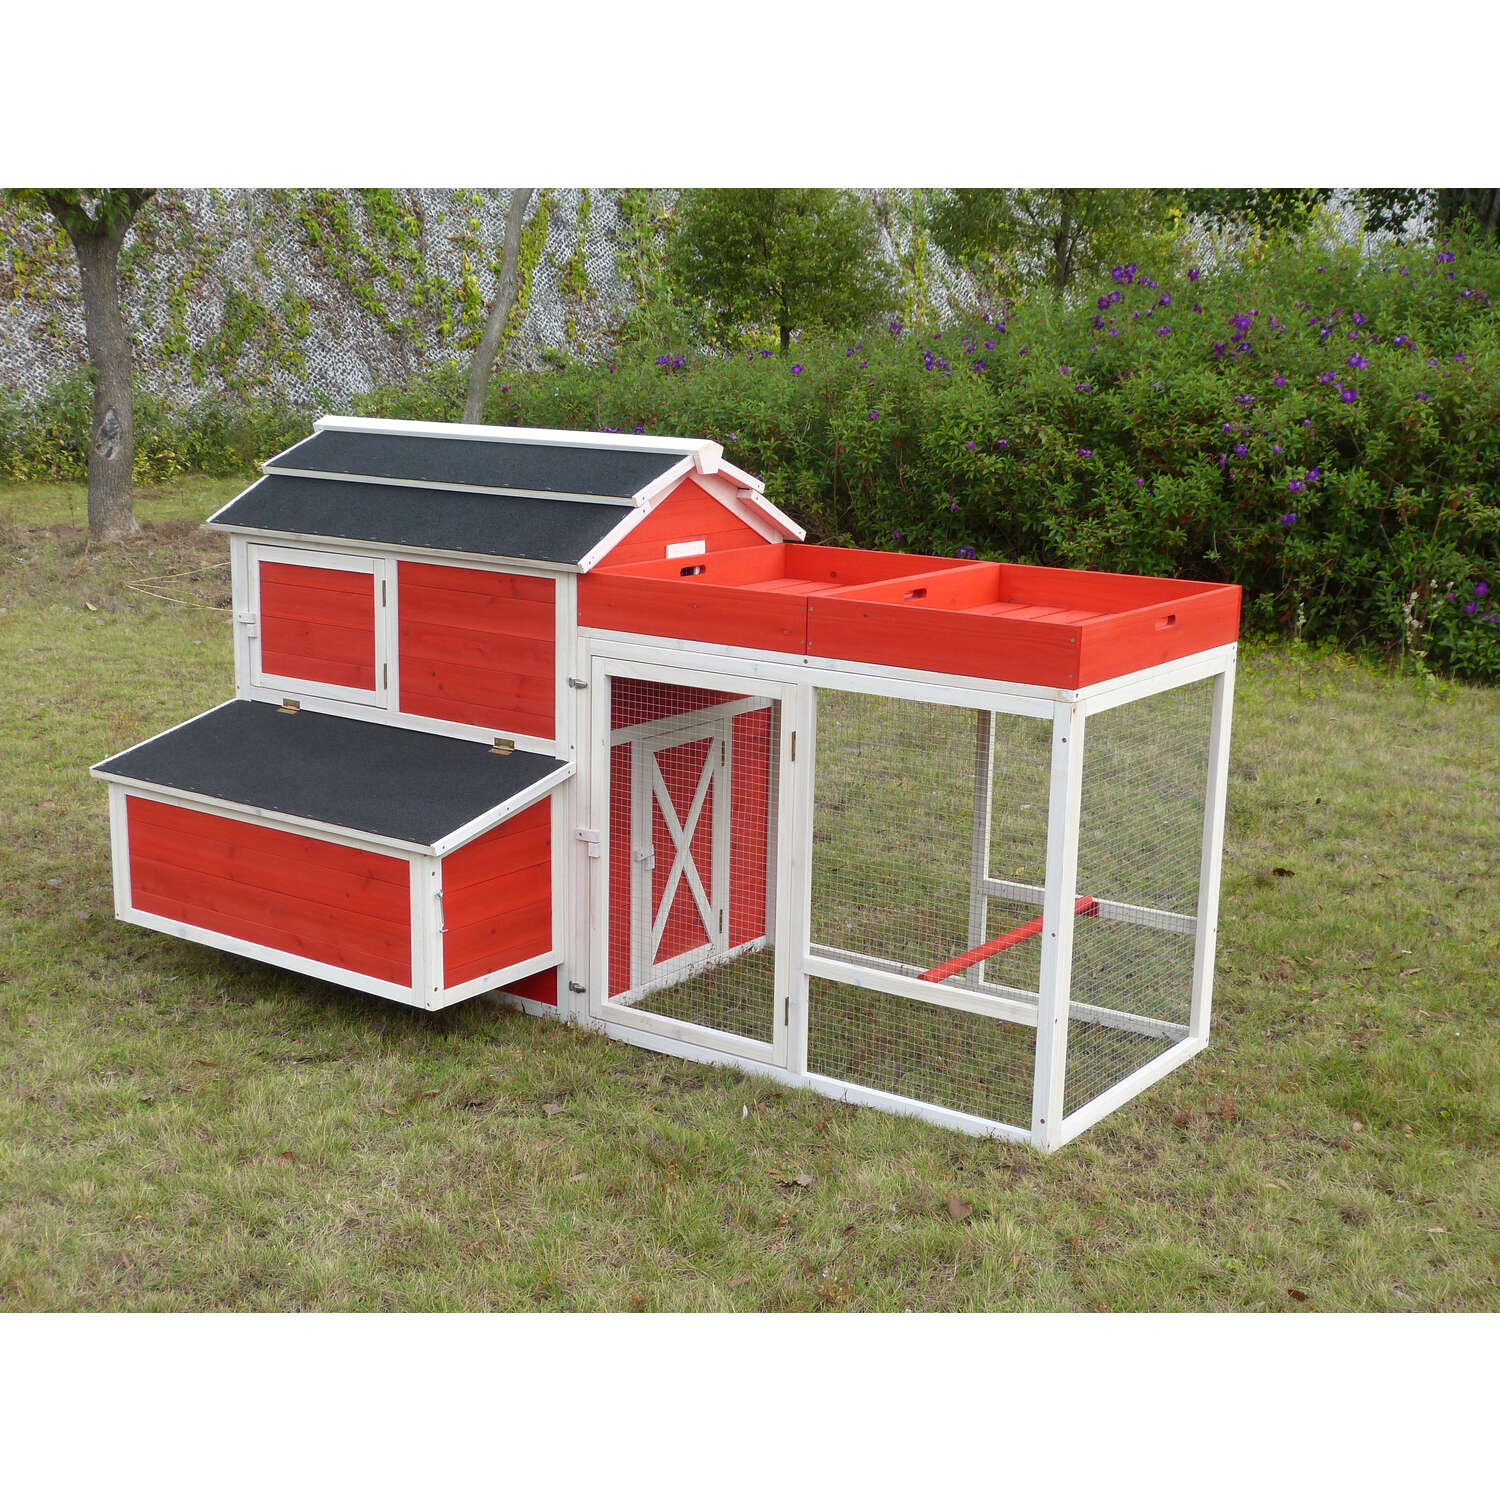 Merry Products 6 Chickens Firwood Red Barn Chicken Coop Ace Hardware